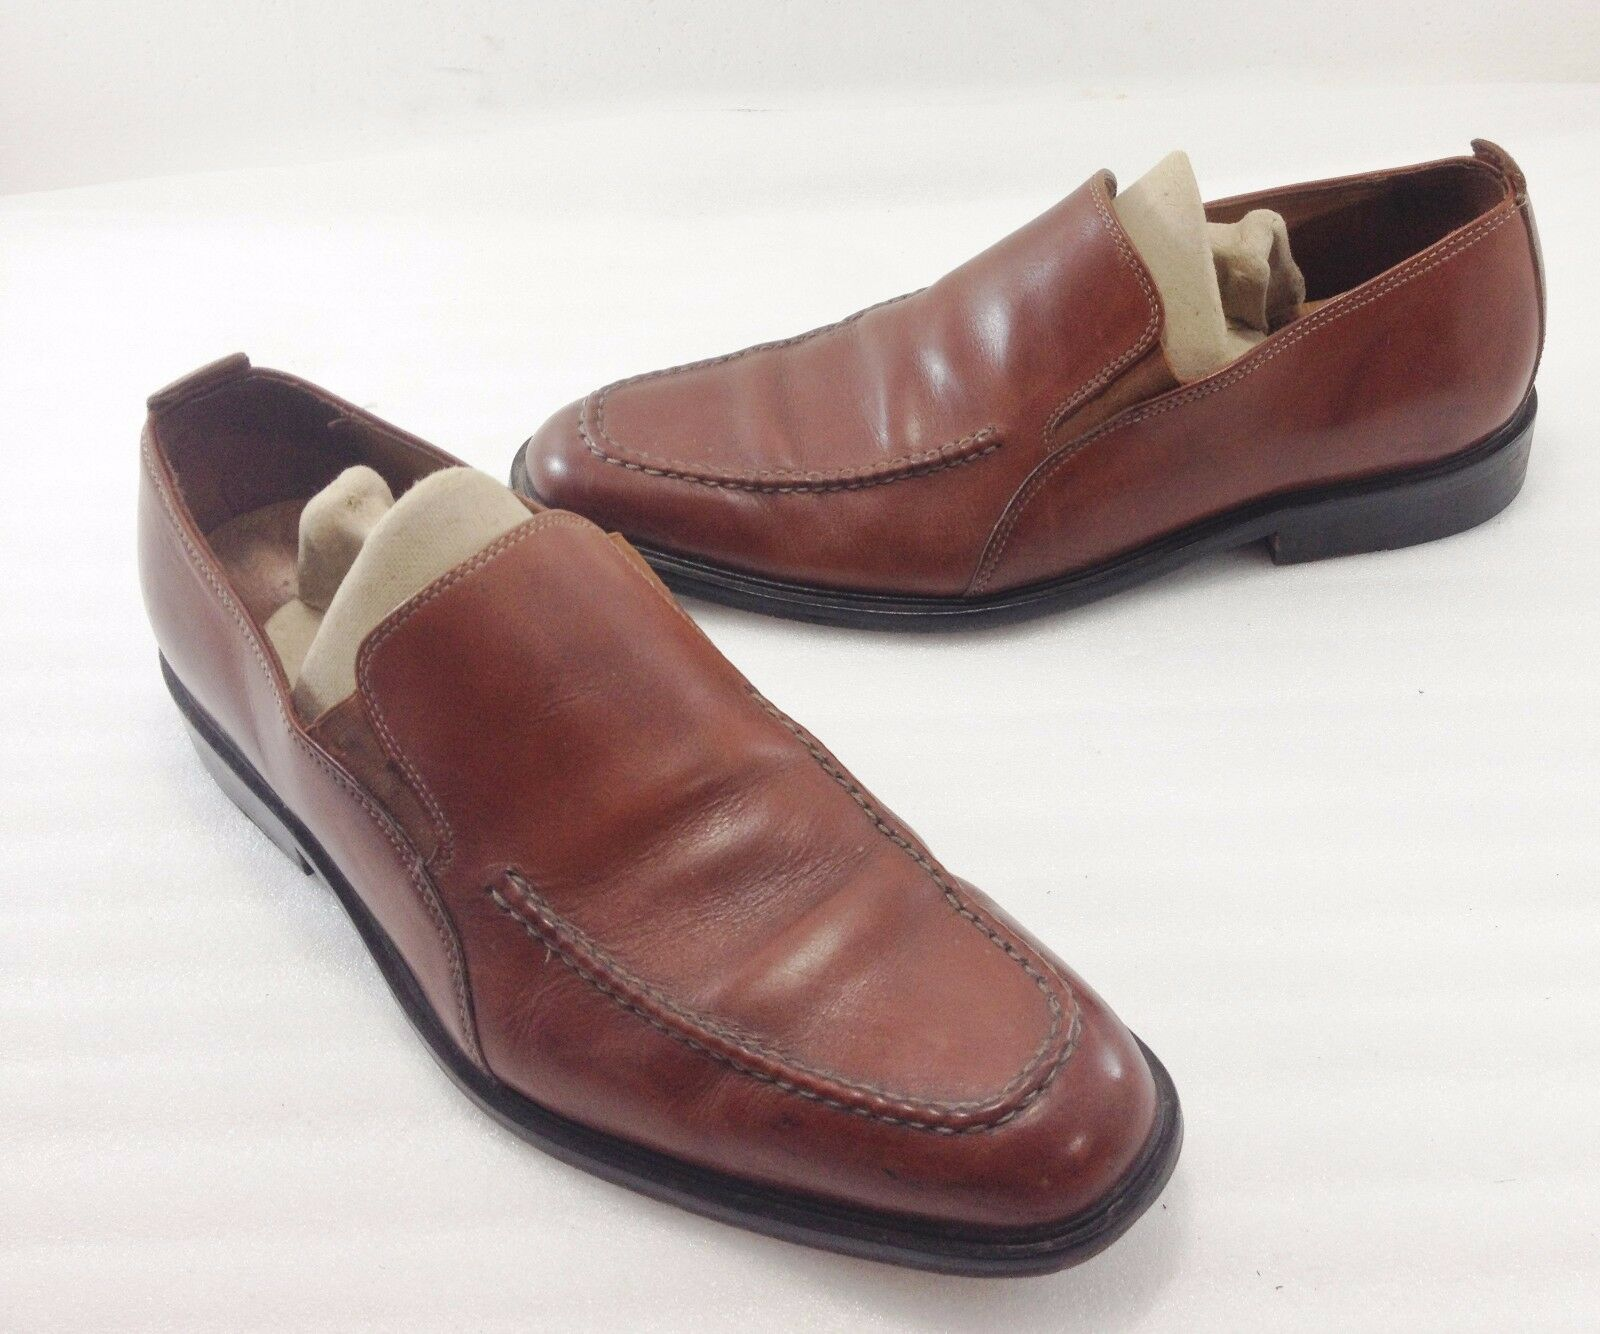 Cole Haan Mens 9 M Brown Leather Slip-On Loafers shoes